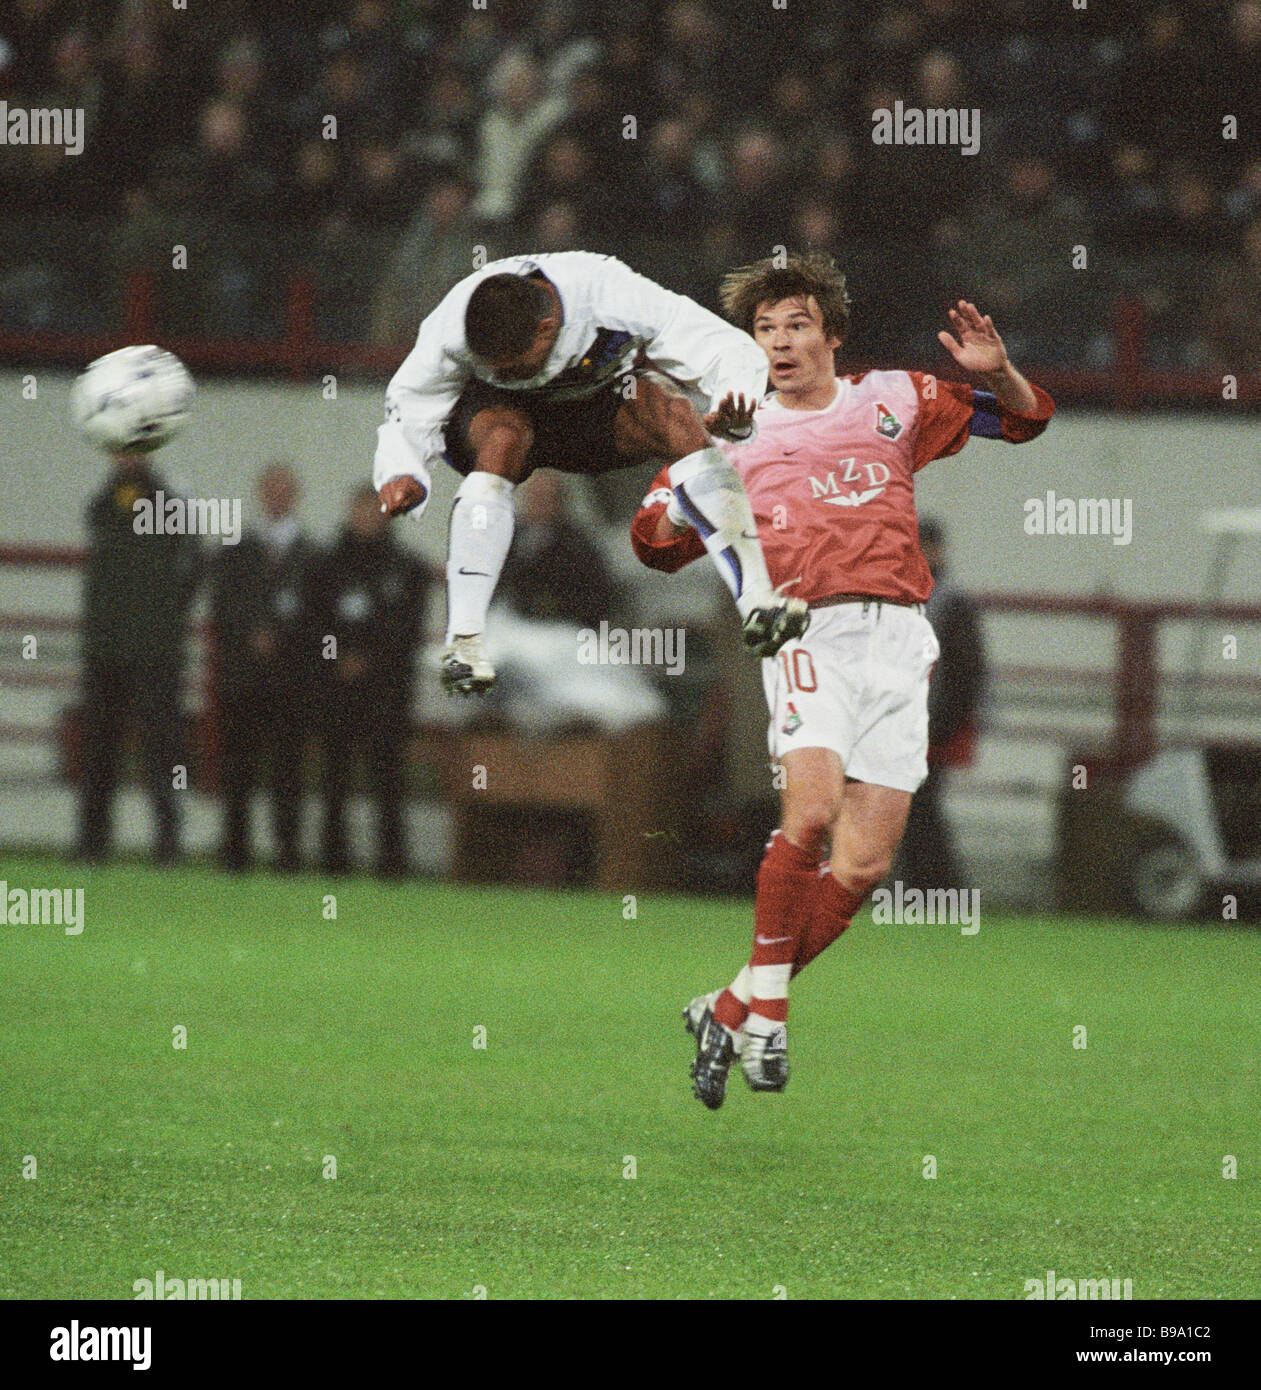 A moment of a football match between Lokomotiv and Inter teams - Stock Image